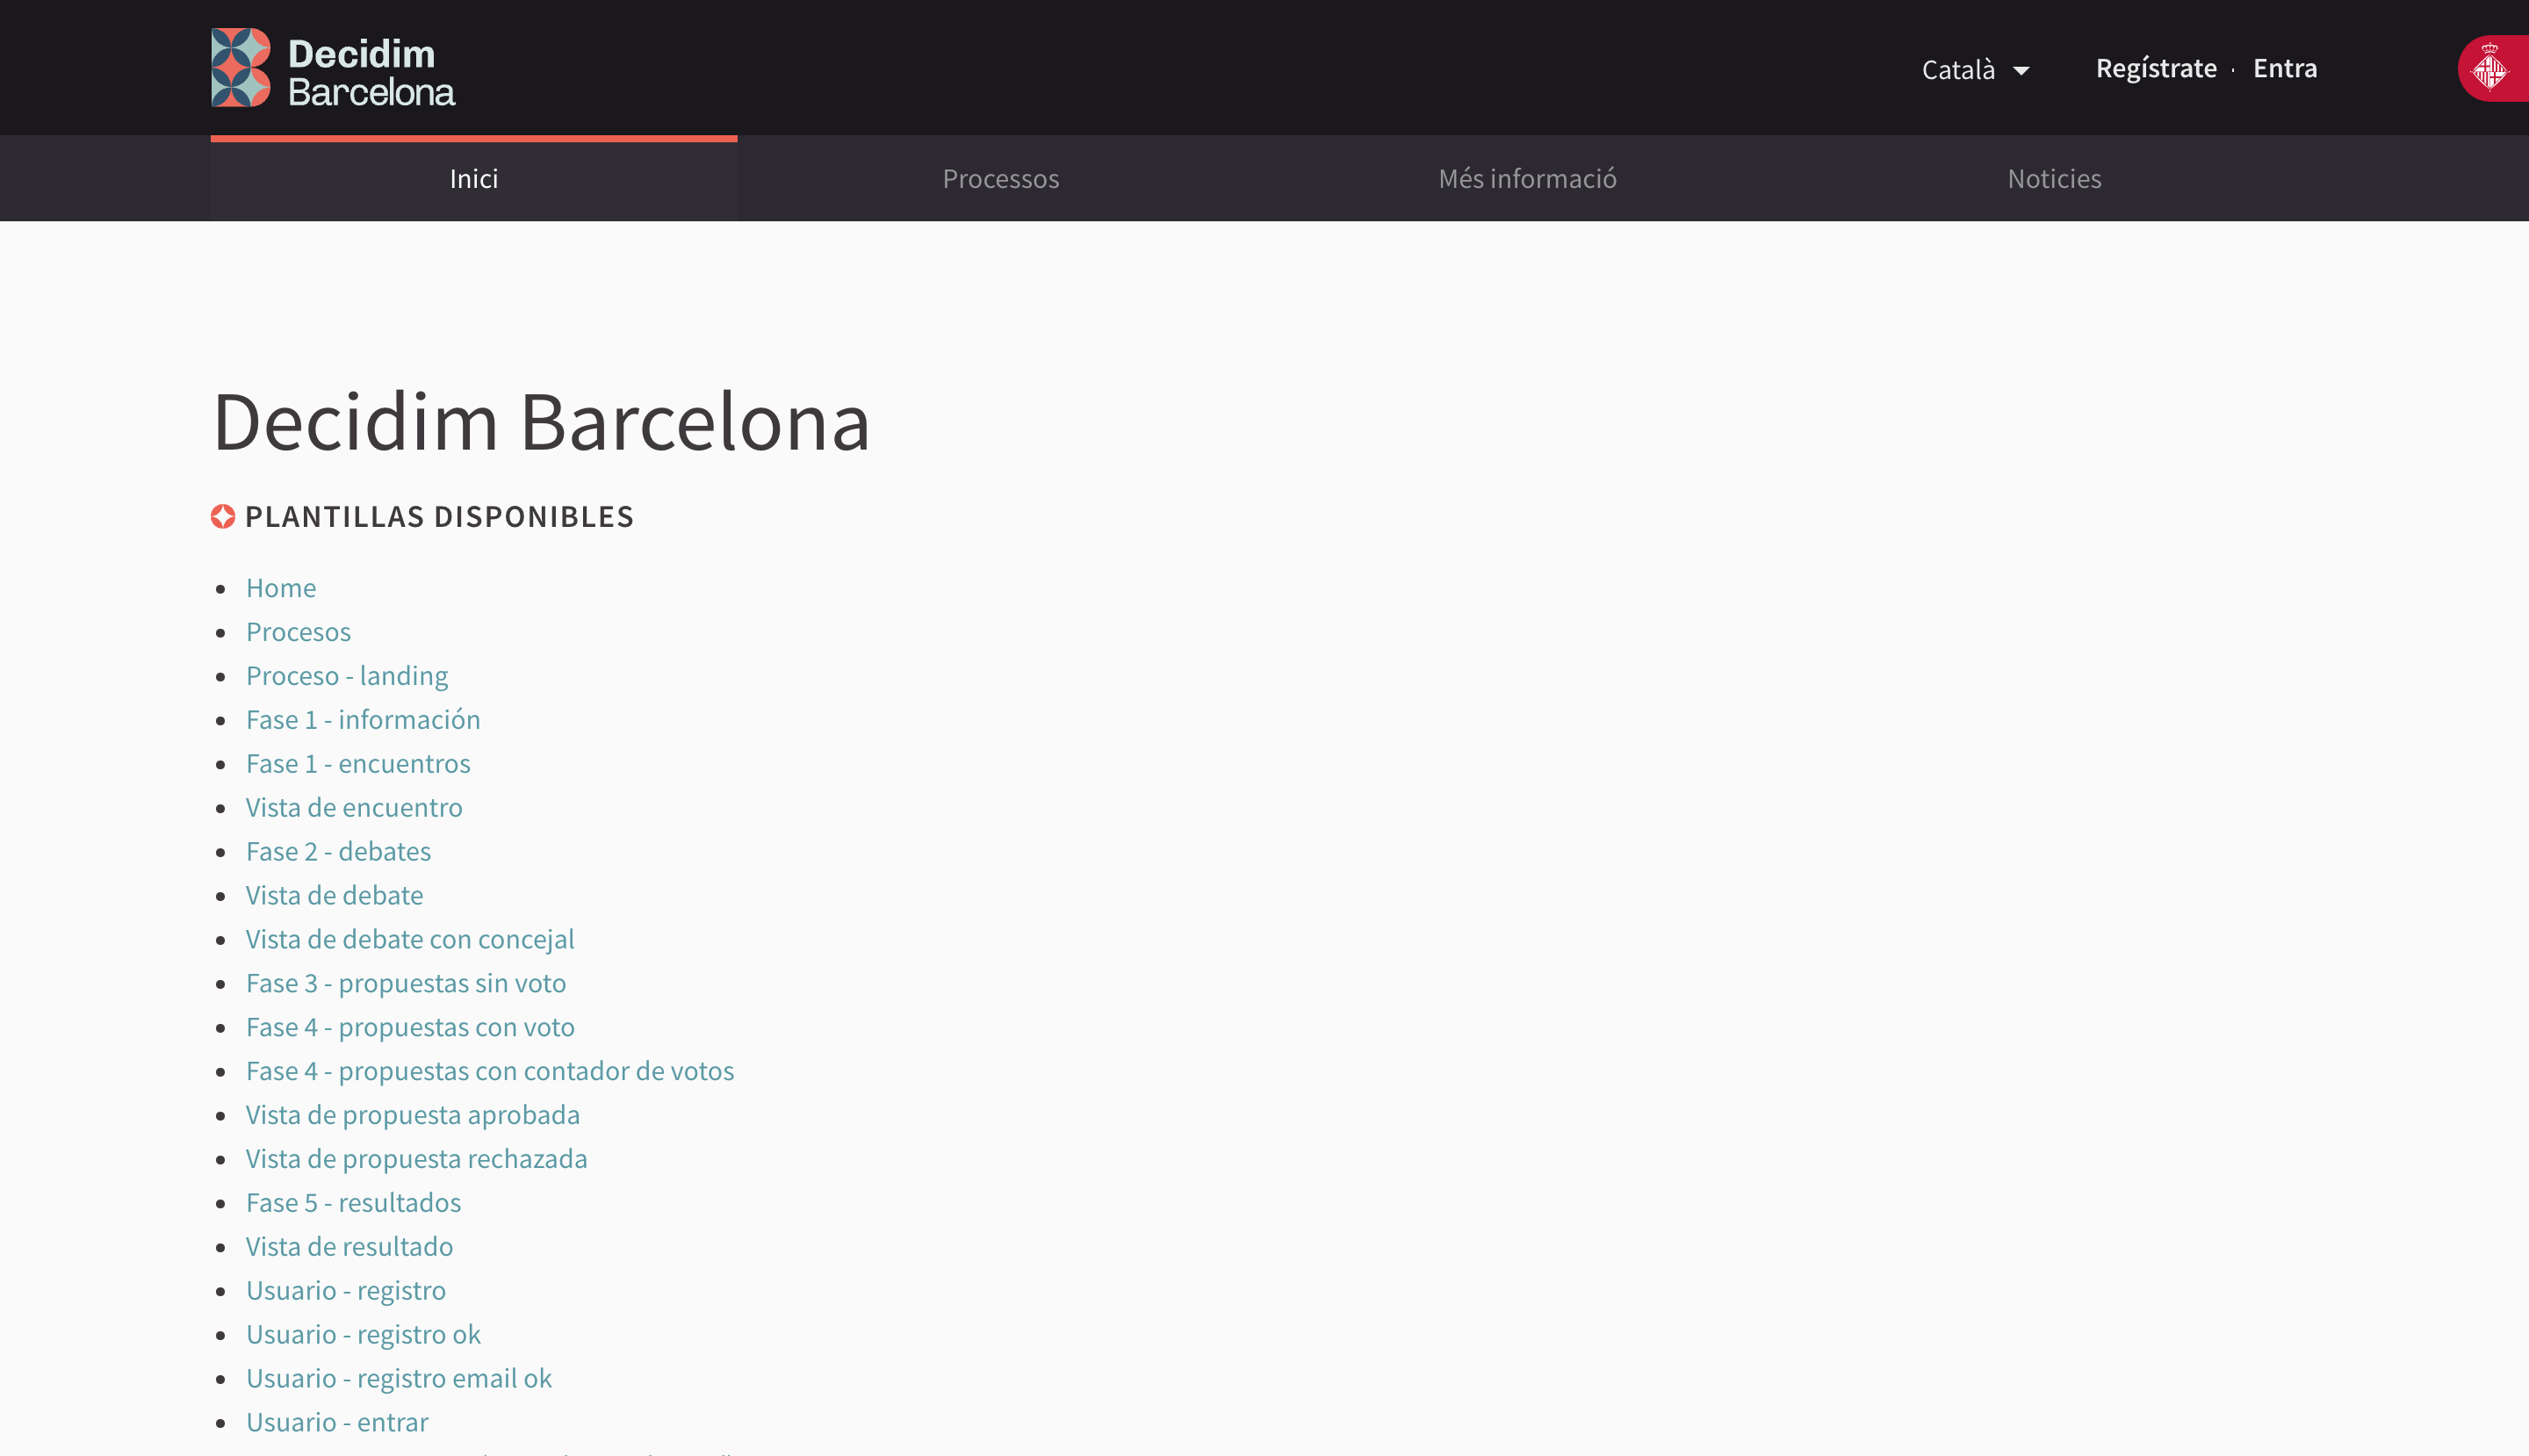 Decidim Barcelona's list of pages